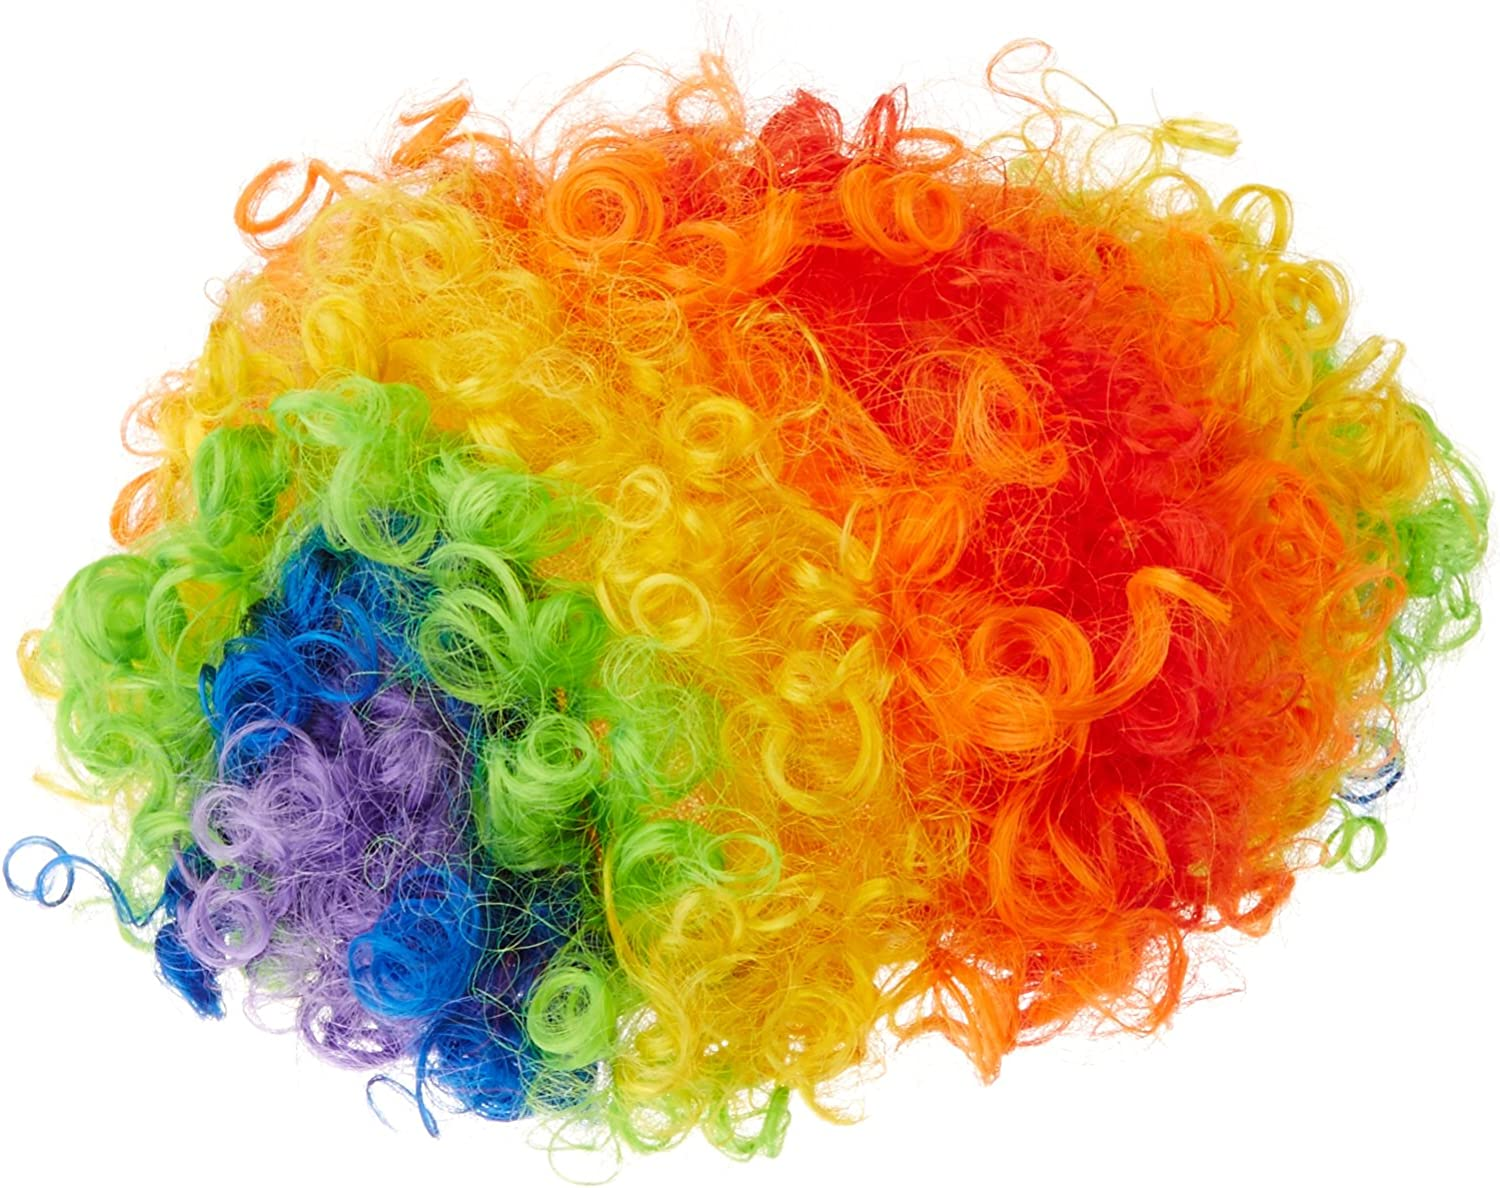 Beistle 60273 Rainbow Clown Wig